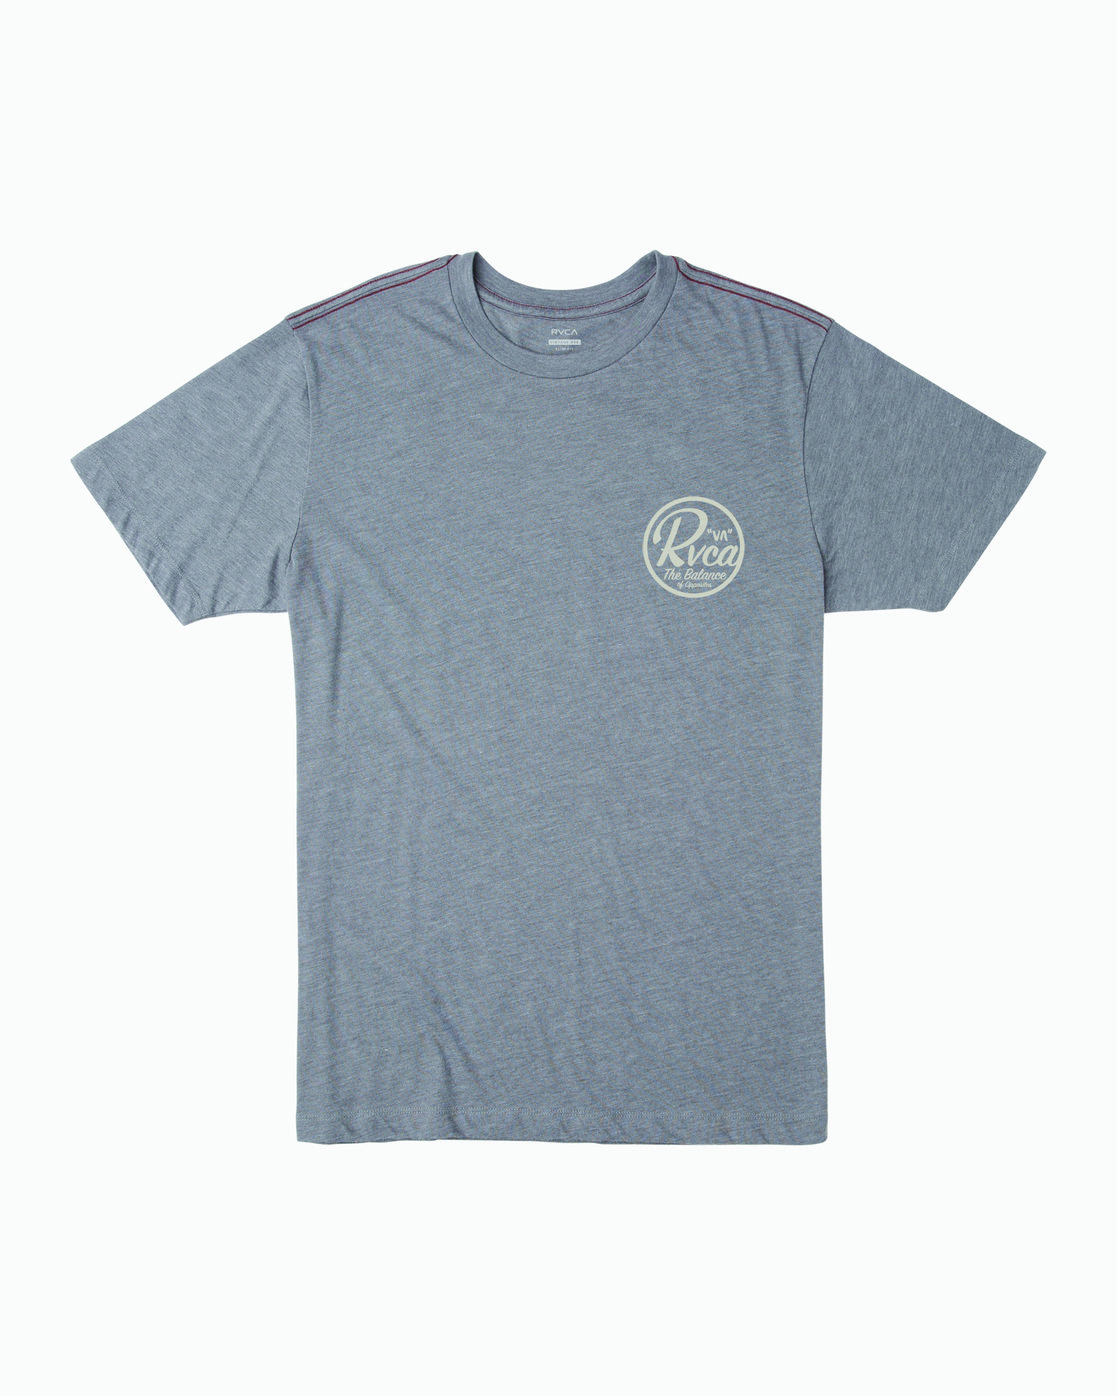 0 PATCH SEAL T-SHIRT Grey M4201RPS RVCA